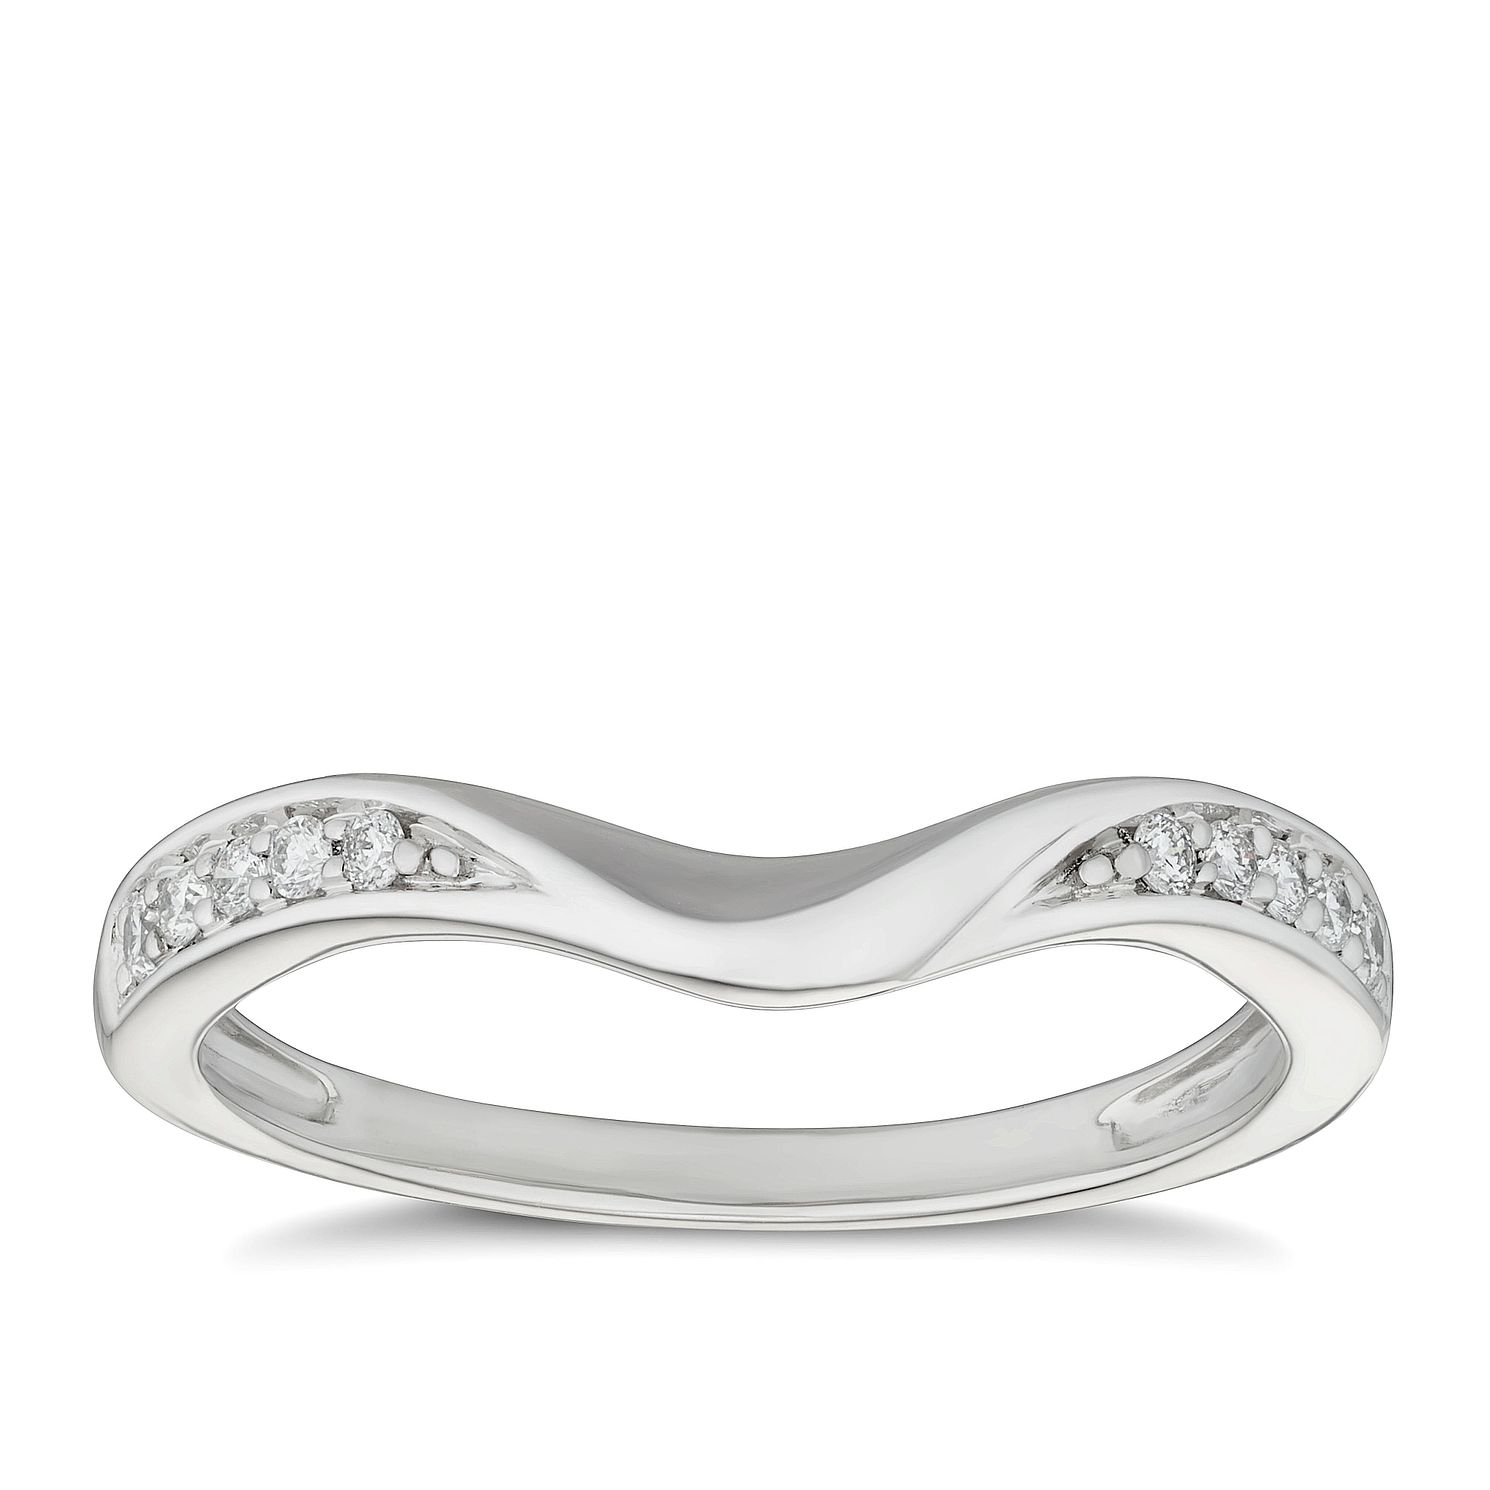 Platinum 1ct Diamond Set Shaped Wedding Ring - Product number 9787771